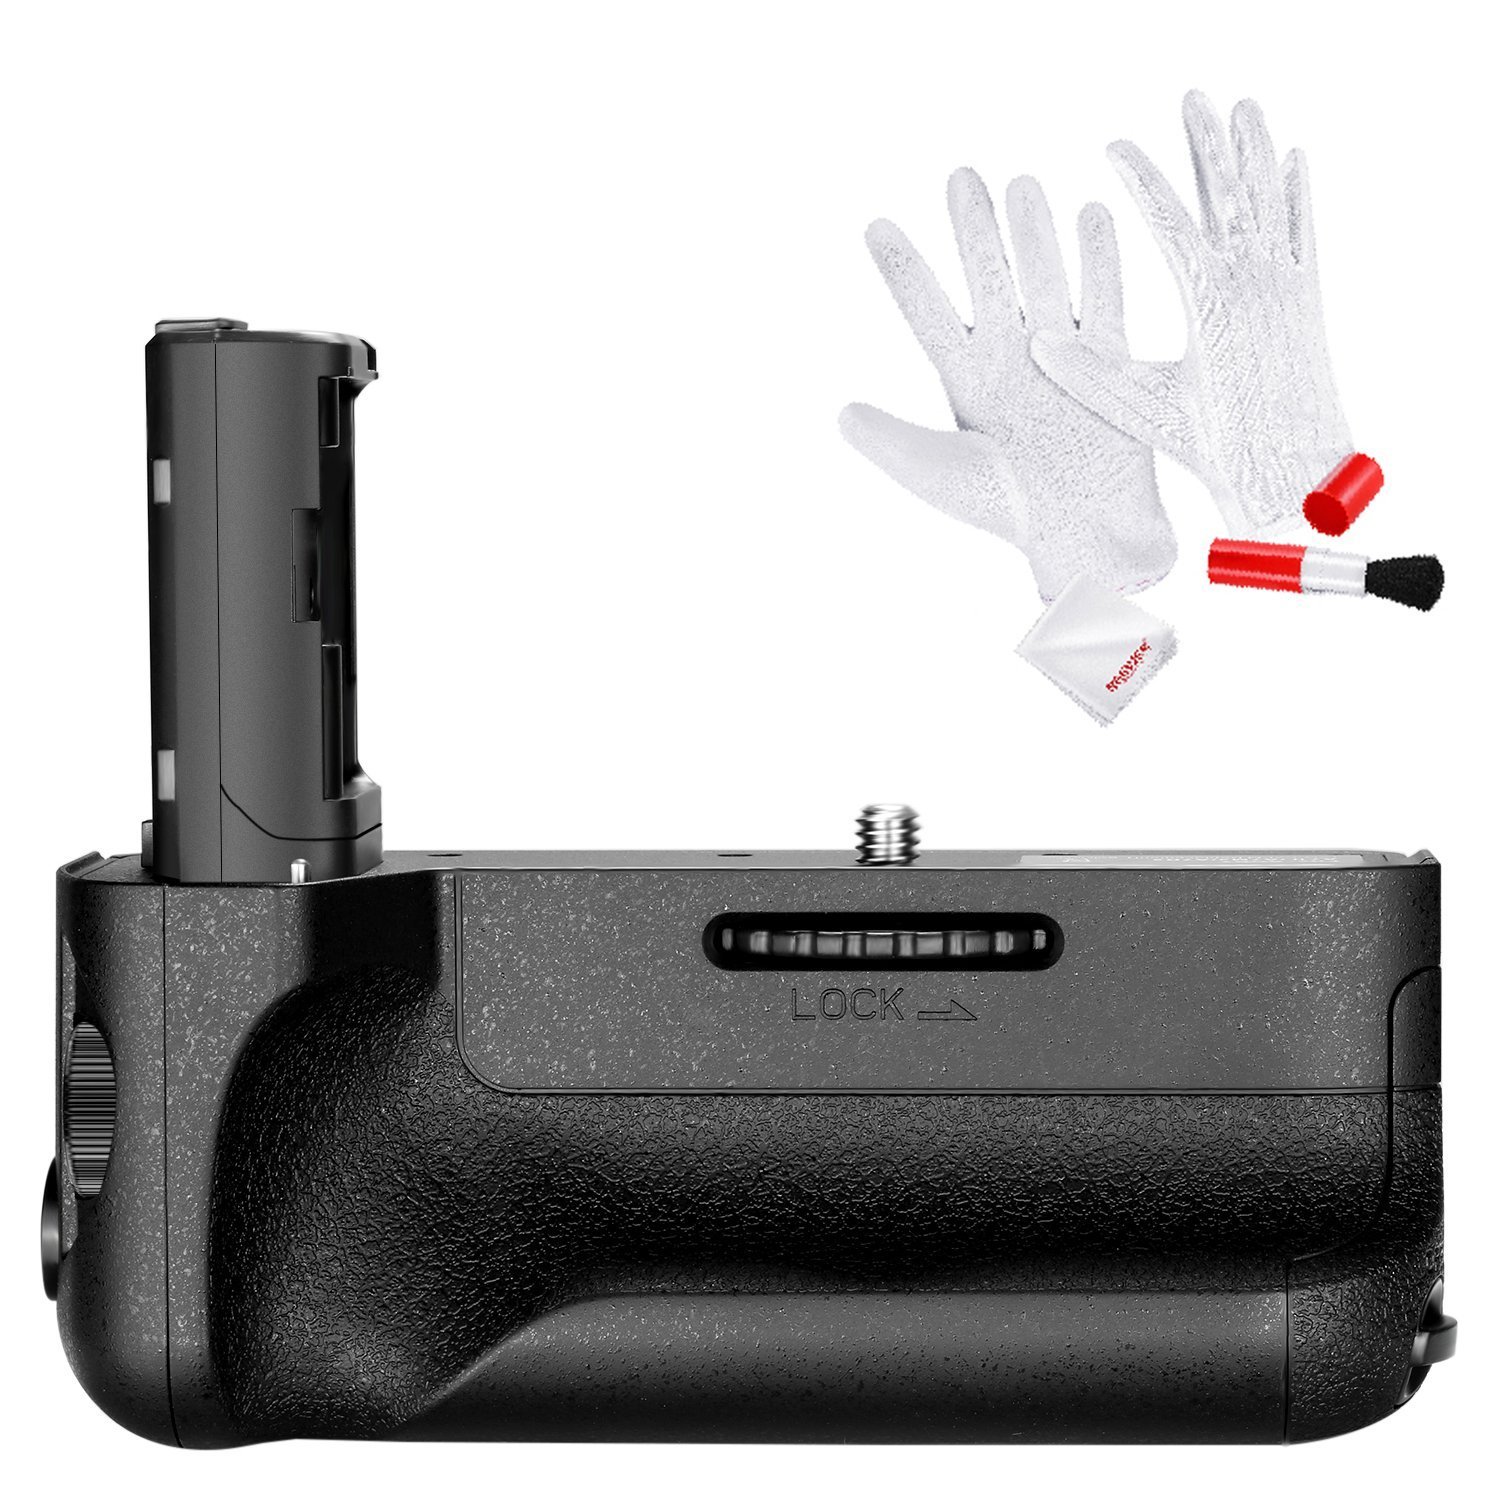 Neewer VG-C2EM Replacement Vertical Battery Grip, Works with NP-FW50 Battery for SONY A7 II and A7R II Cameras, Includes 3-In-1 Cleaning Kit (Anti-static Gloves, Lens Brush, Microfiber Cleaning Cloth)